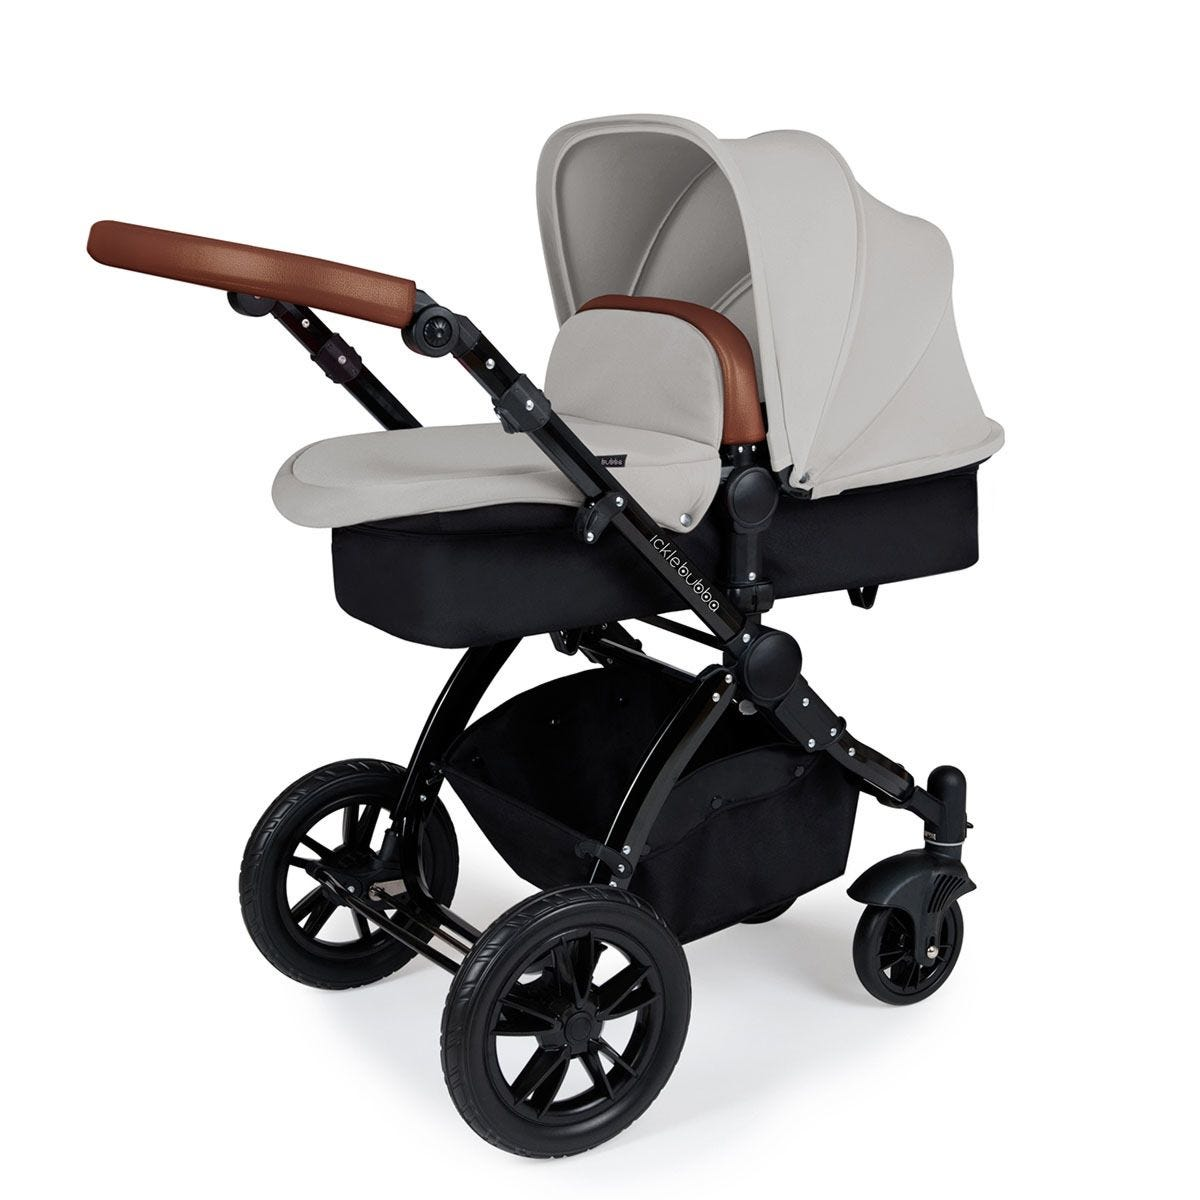 Ickle Bubba Stomp V3 2 in 1 Pushchair - Silver on Black with Tan Handles